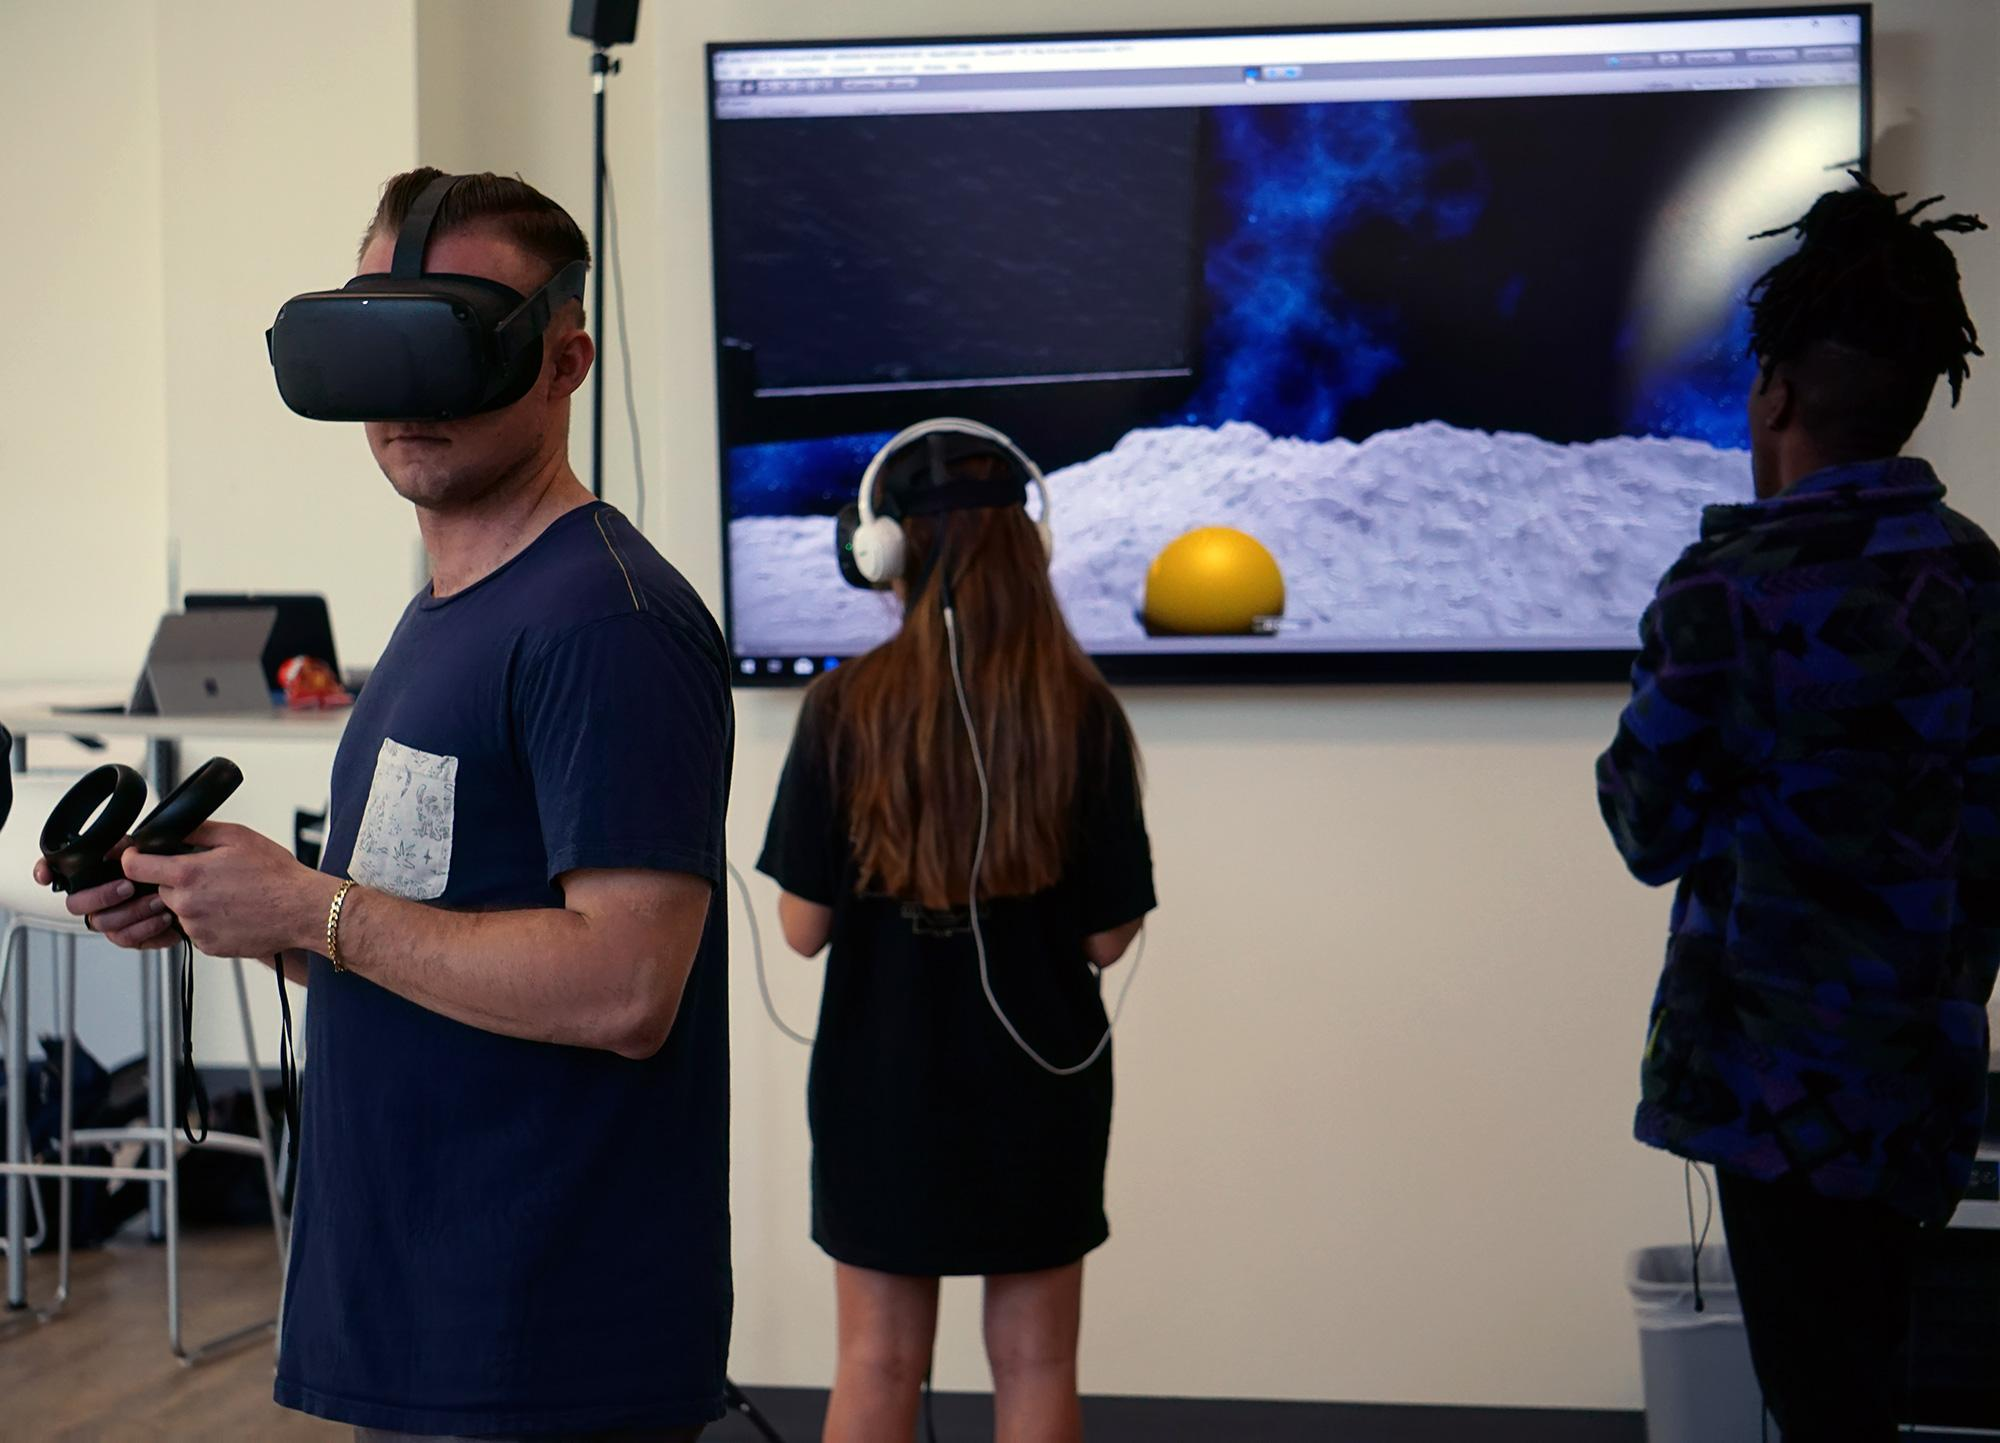 Tech Core coder Tim Lukau  stands by as two students simultaneously explore the Nano 2020 environment.